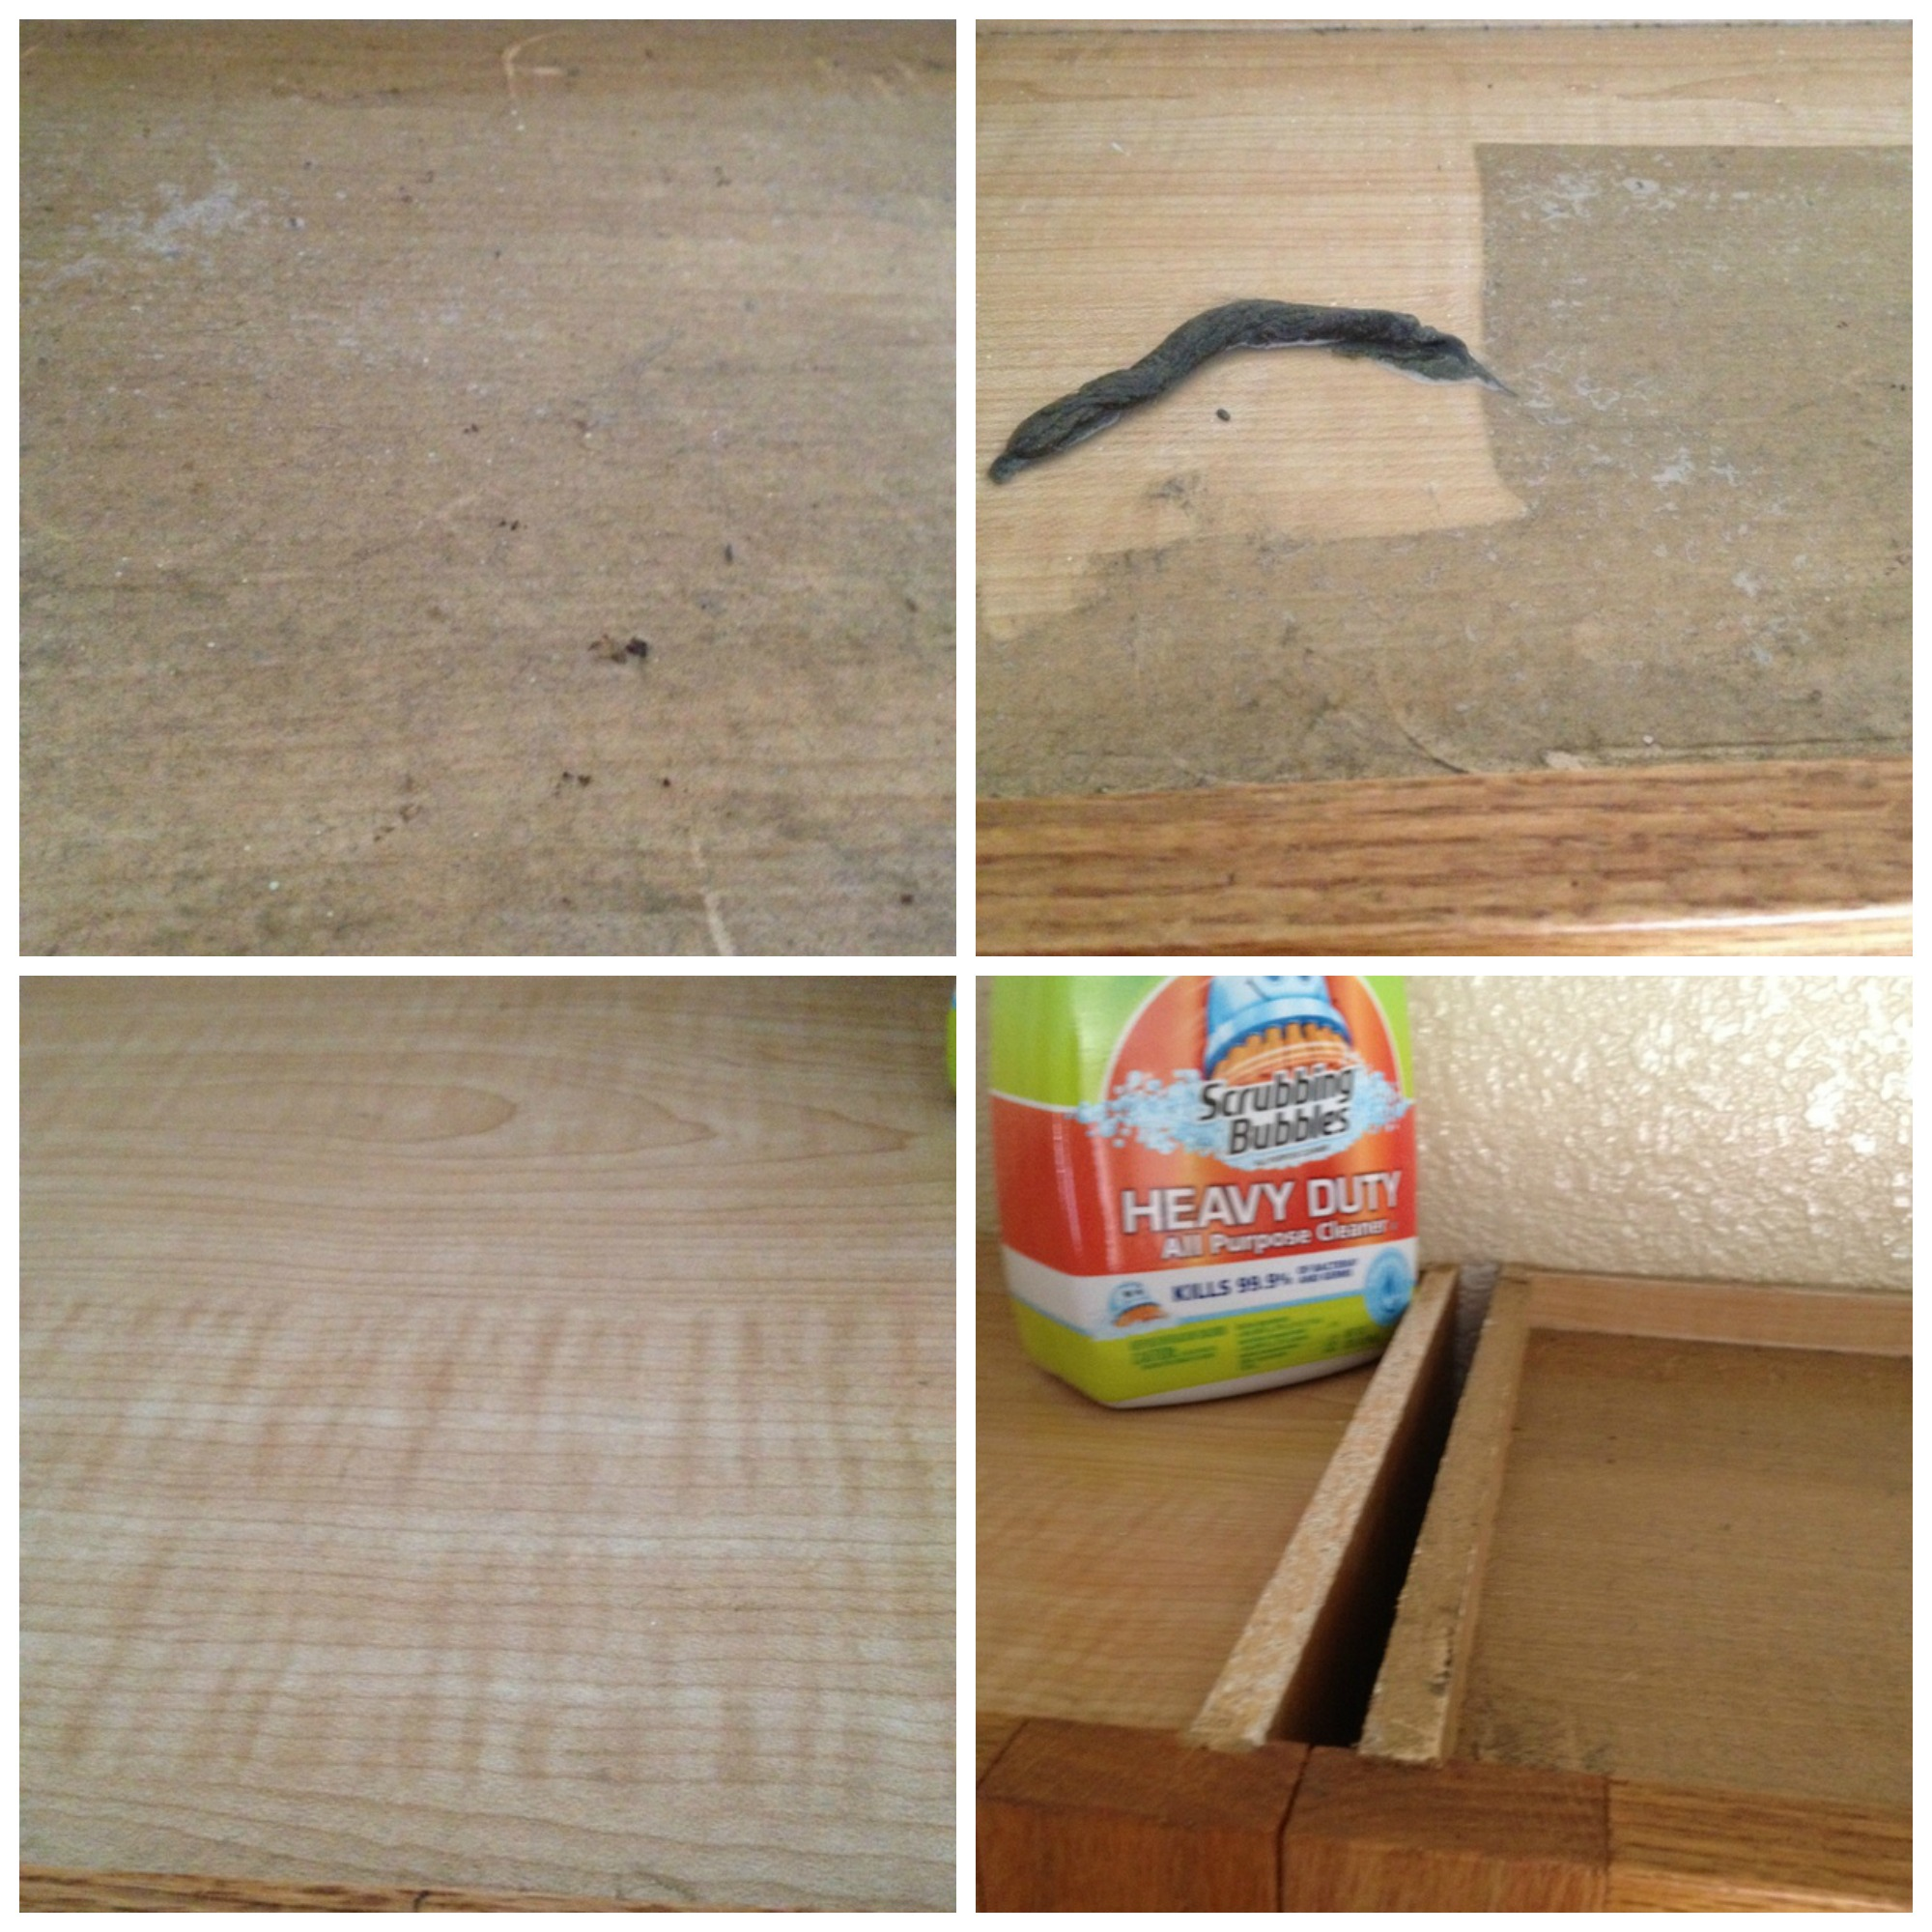 How To Remove Grease From Kitchen Cabinets: How To Clean The Tops Of Greasy Kitchen Cabinets